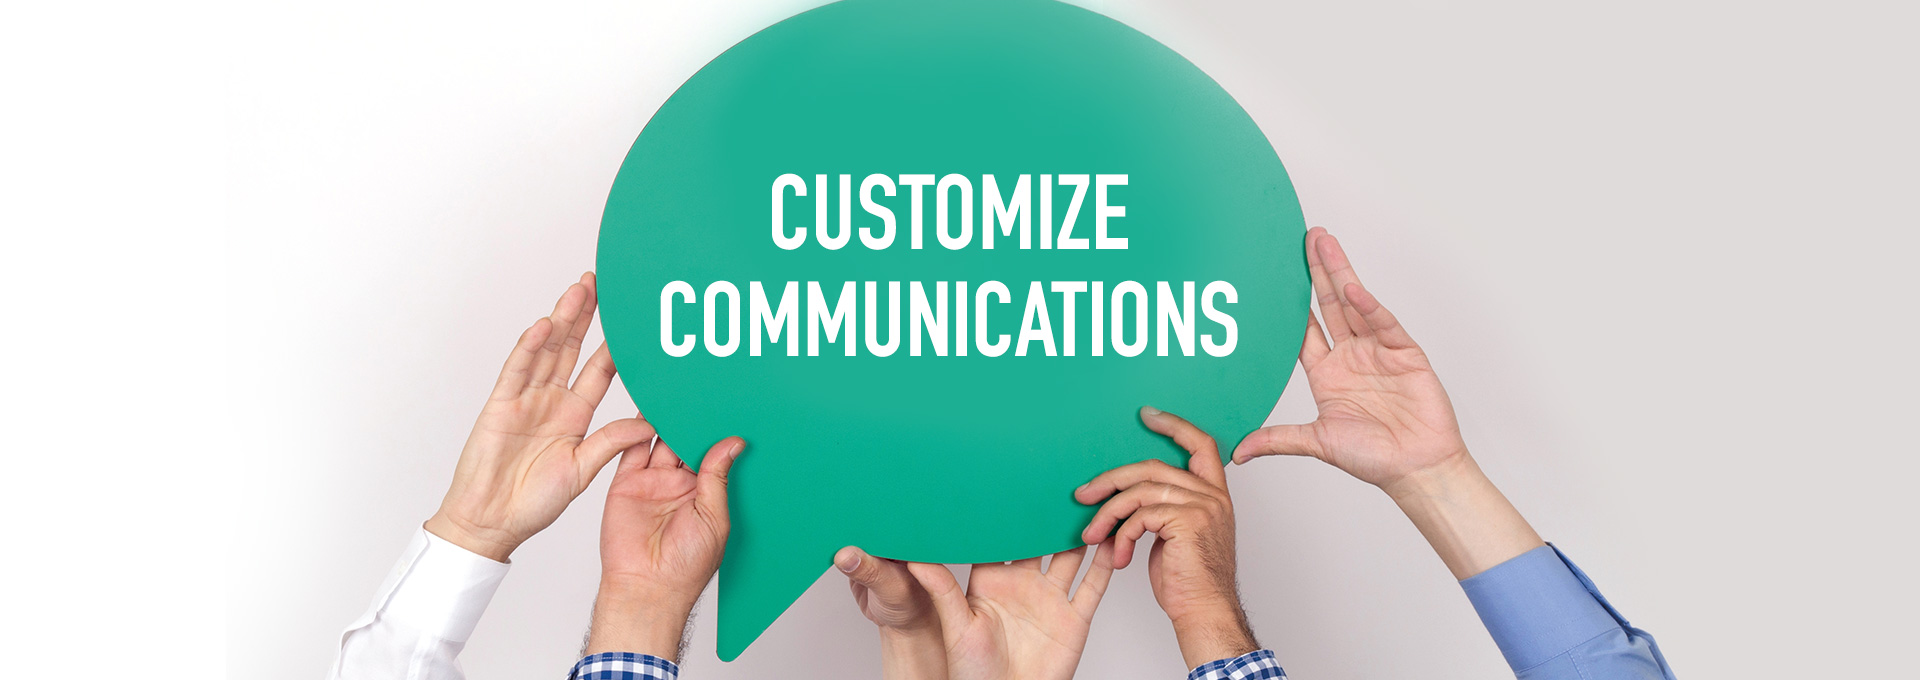 Customize Communications for a Better Customer Experience